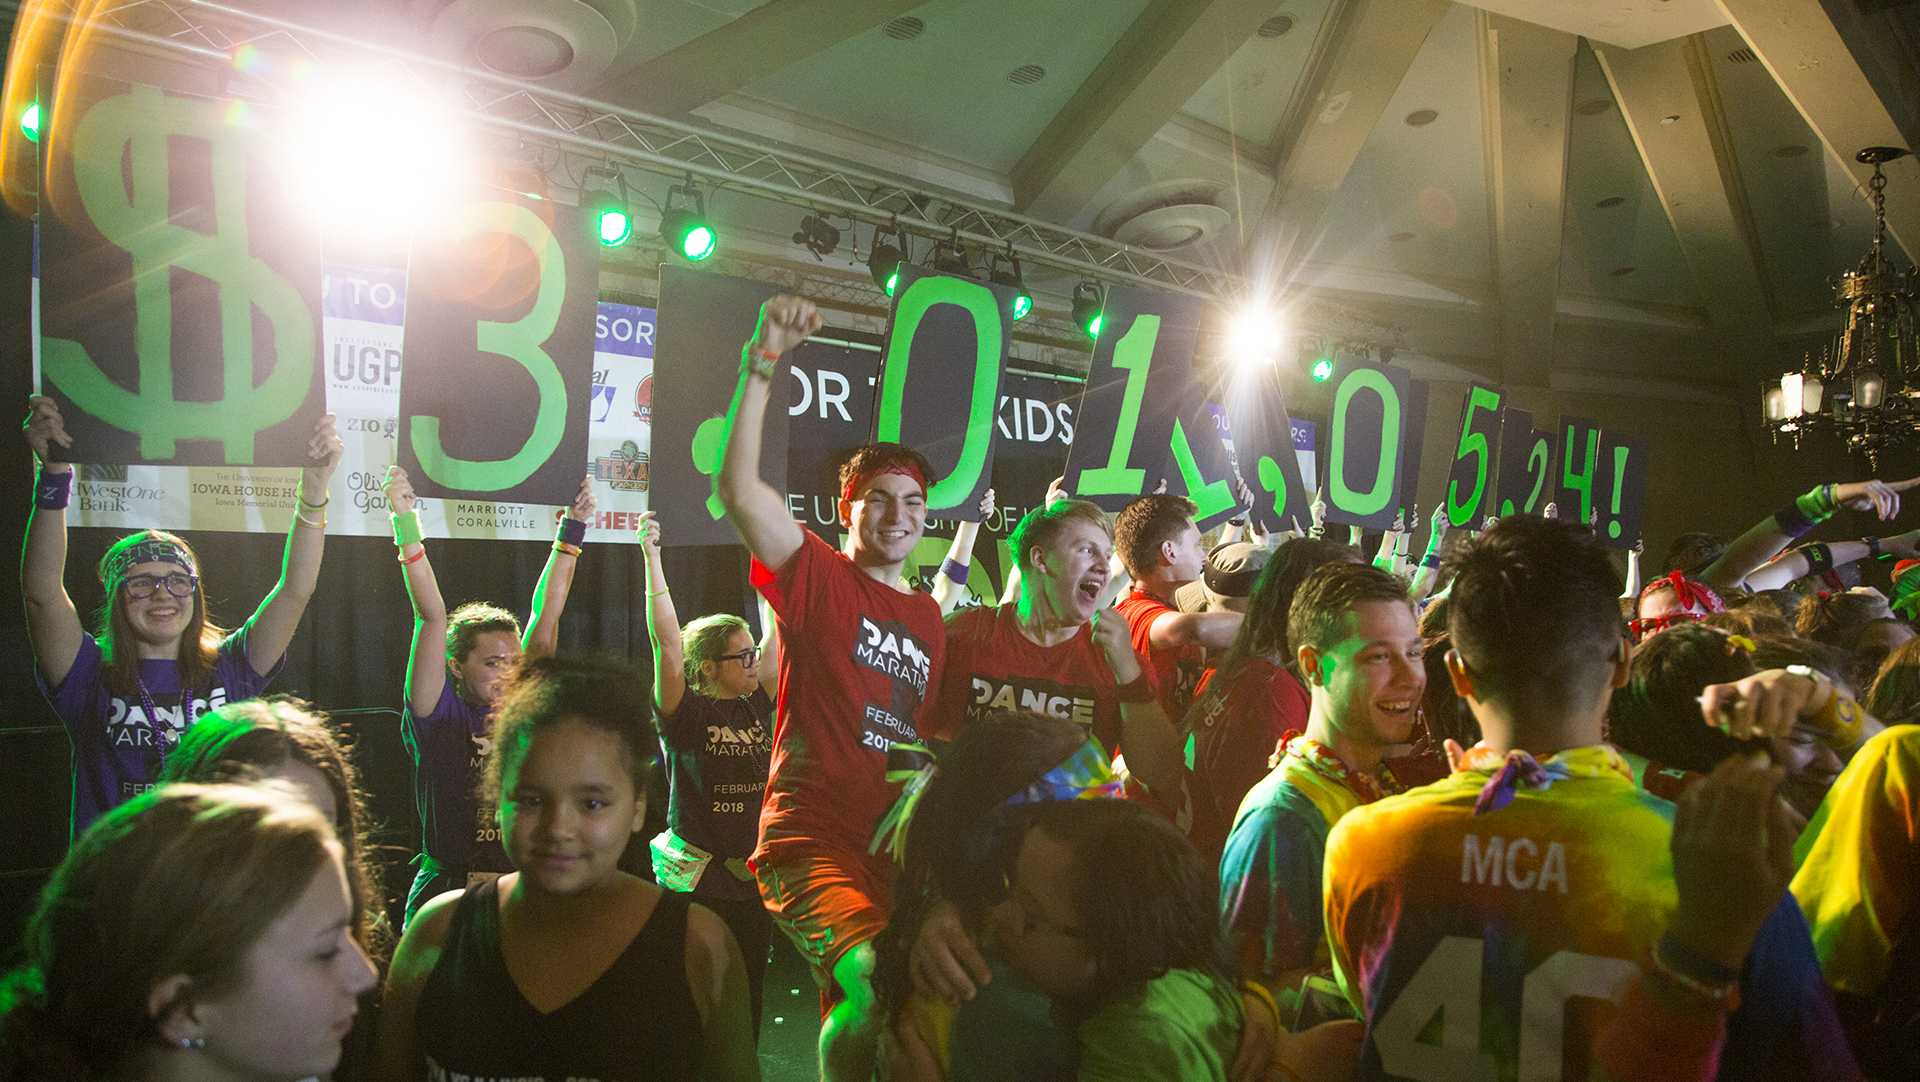 The Big Reveal shows a UI-record breaking amount of $3,011,015.24 for Dance Marathon 24 in the IMU on Saturday, Feb. 3, 2018. (Lily Smith/The Daily Iowan)